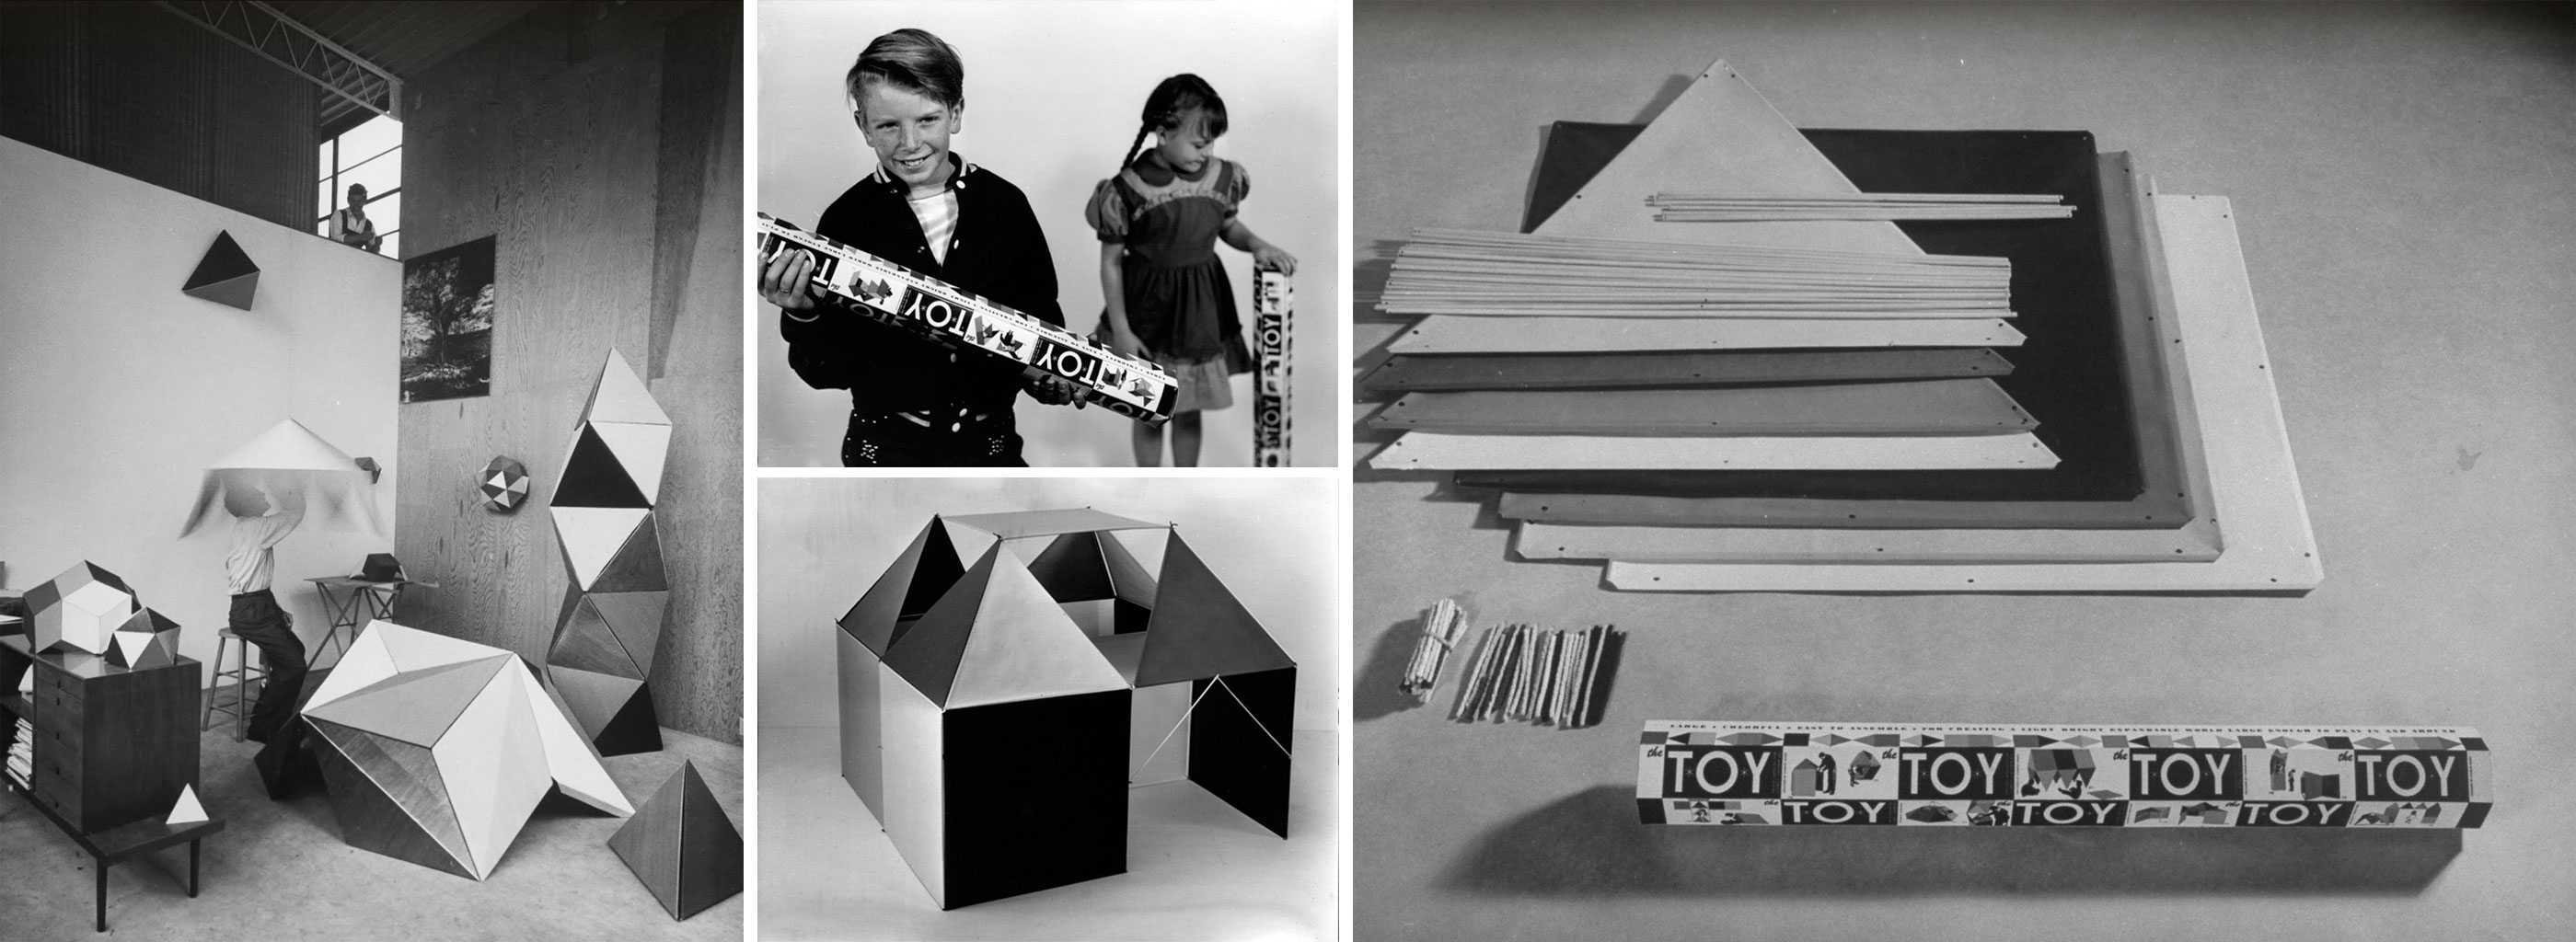 eames-jouet-assemblage-the-toy